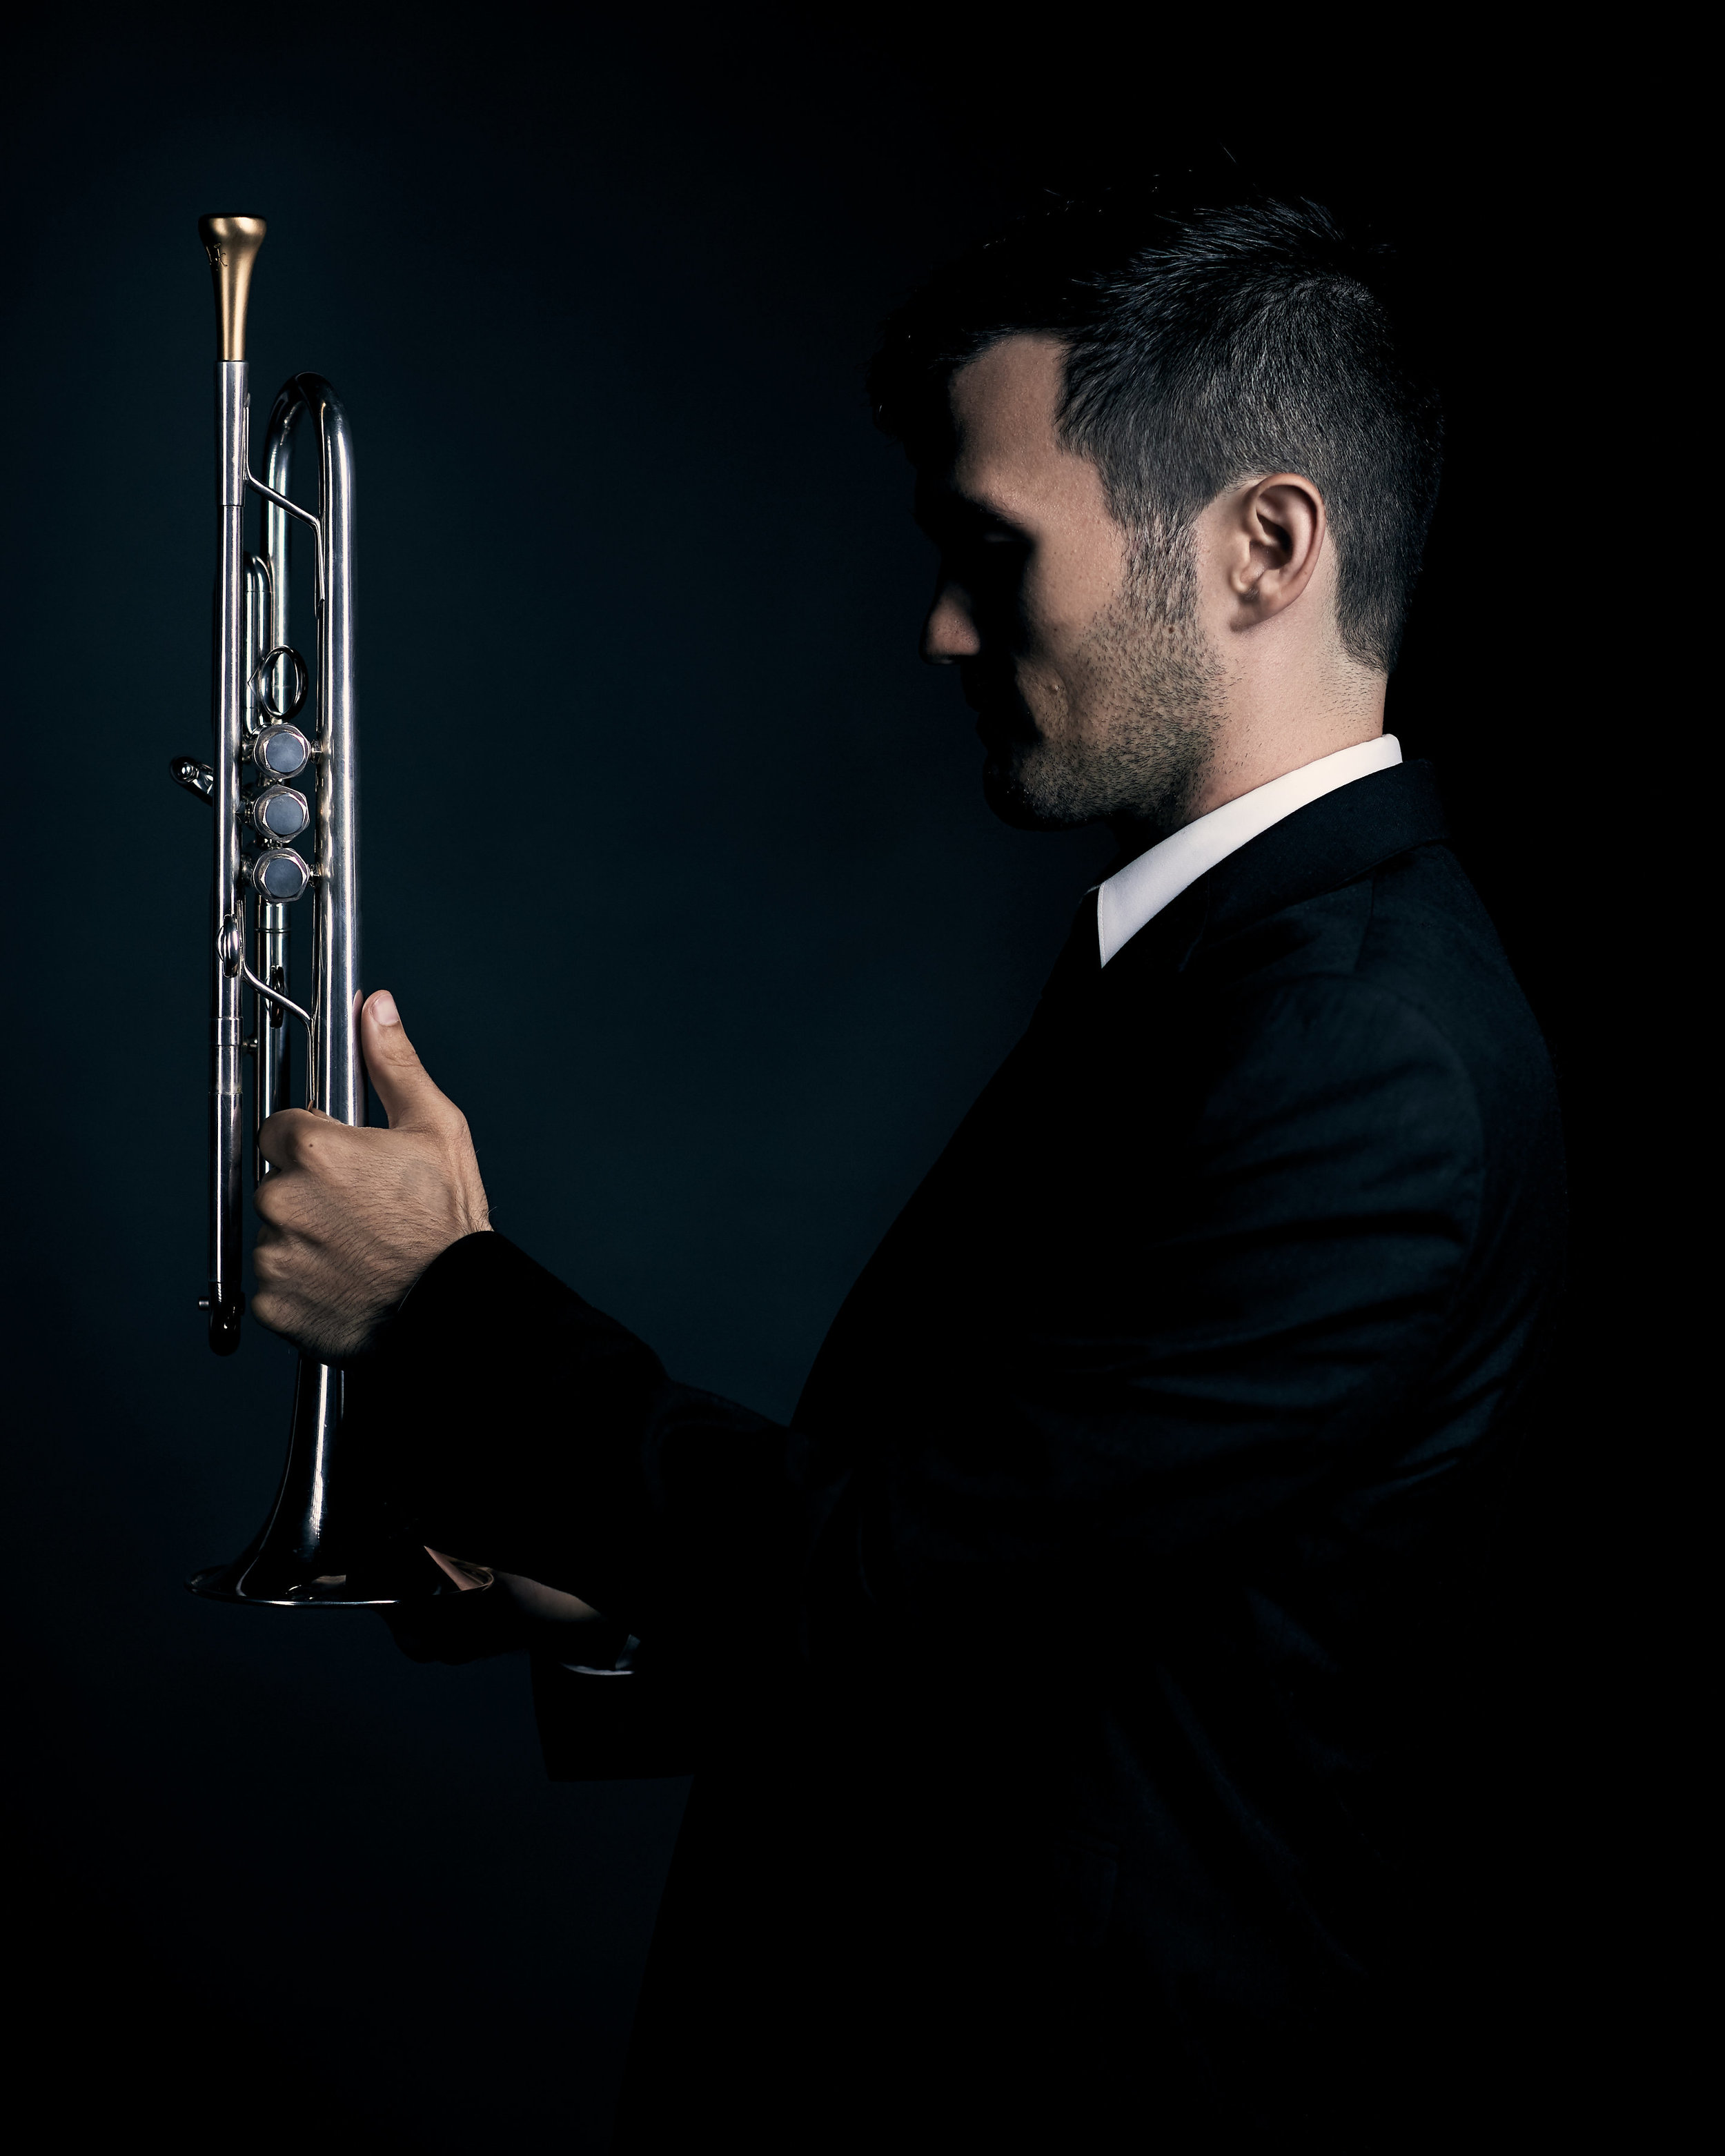 the first trumpet has two duties first is to bring an ensemble together through the democracies: time and tambre and second to bring fire to the one-mind that happens when all ears are open and musicians breathe and sing together